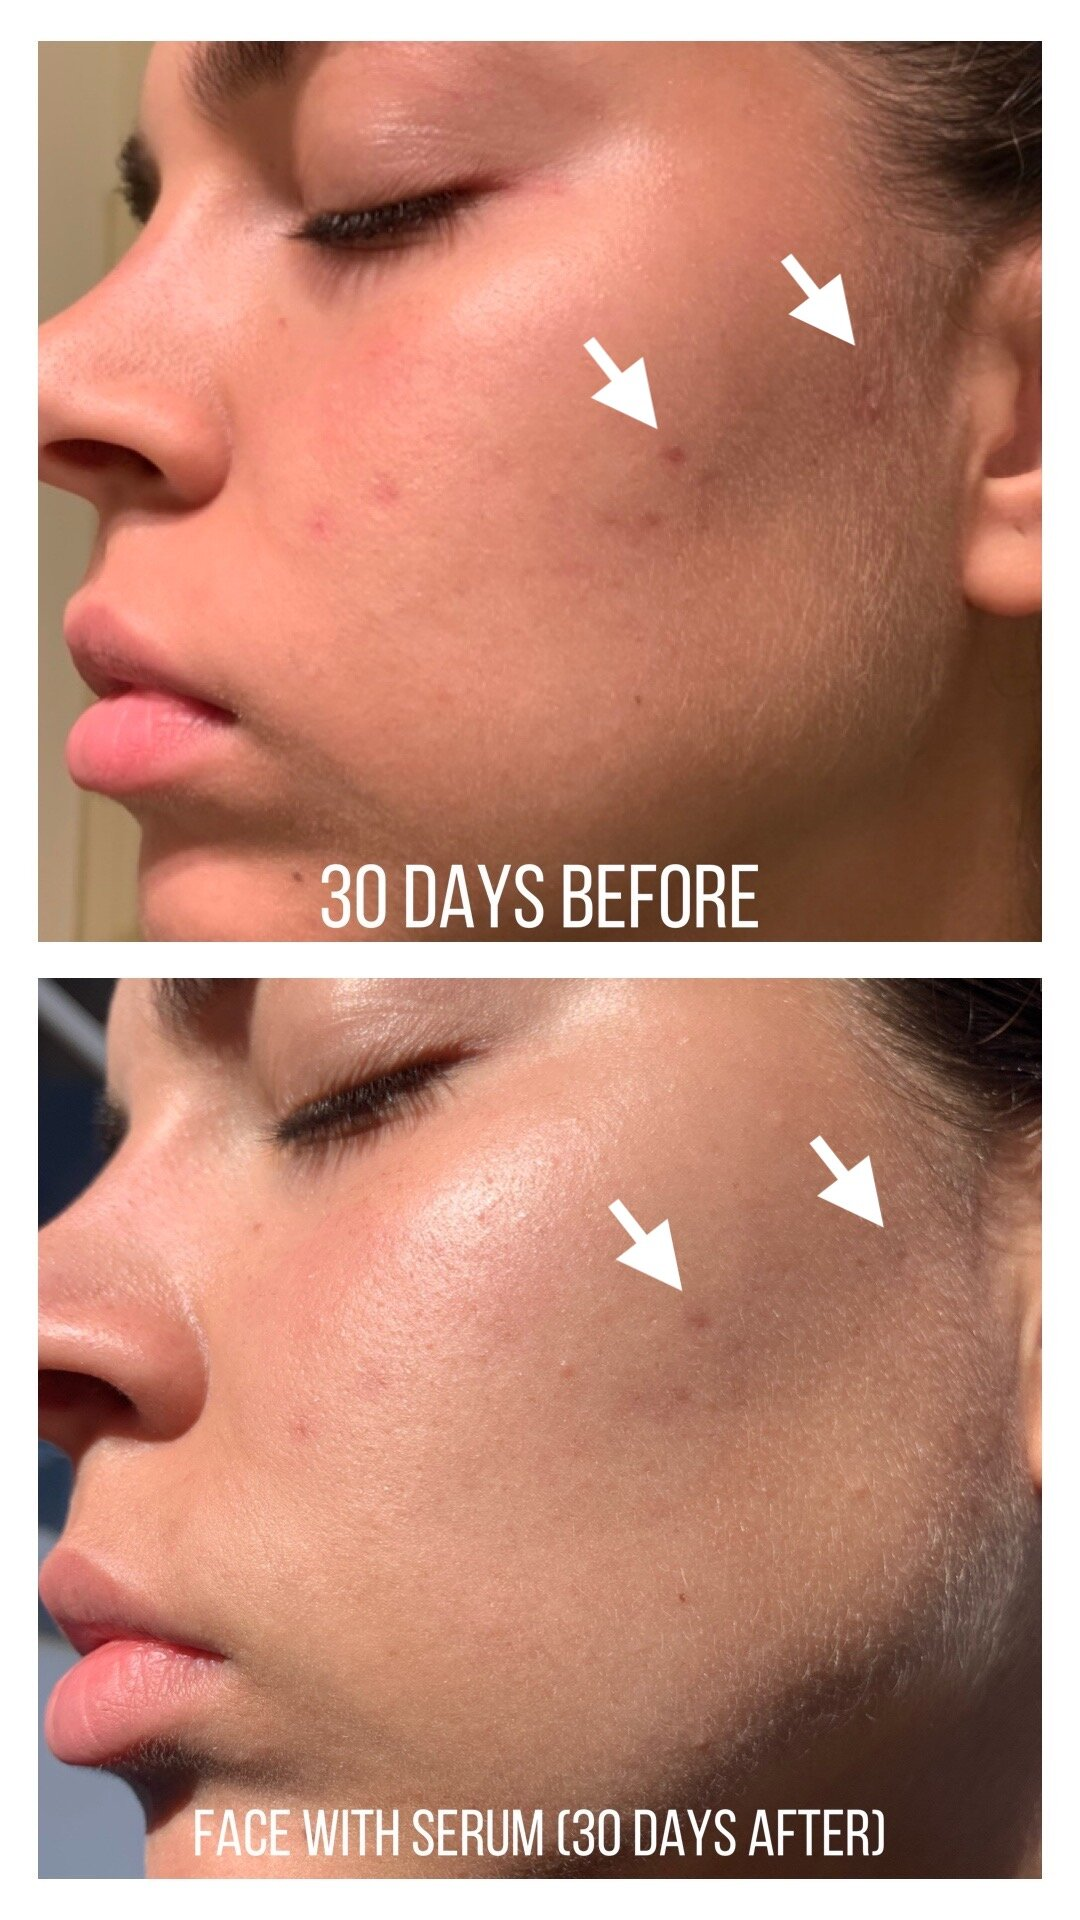 [REVIEW] THE ORDINARY Niacinamide 10% + Zinc 1% (Before and After)